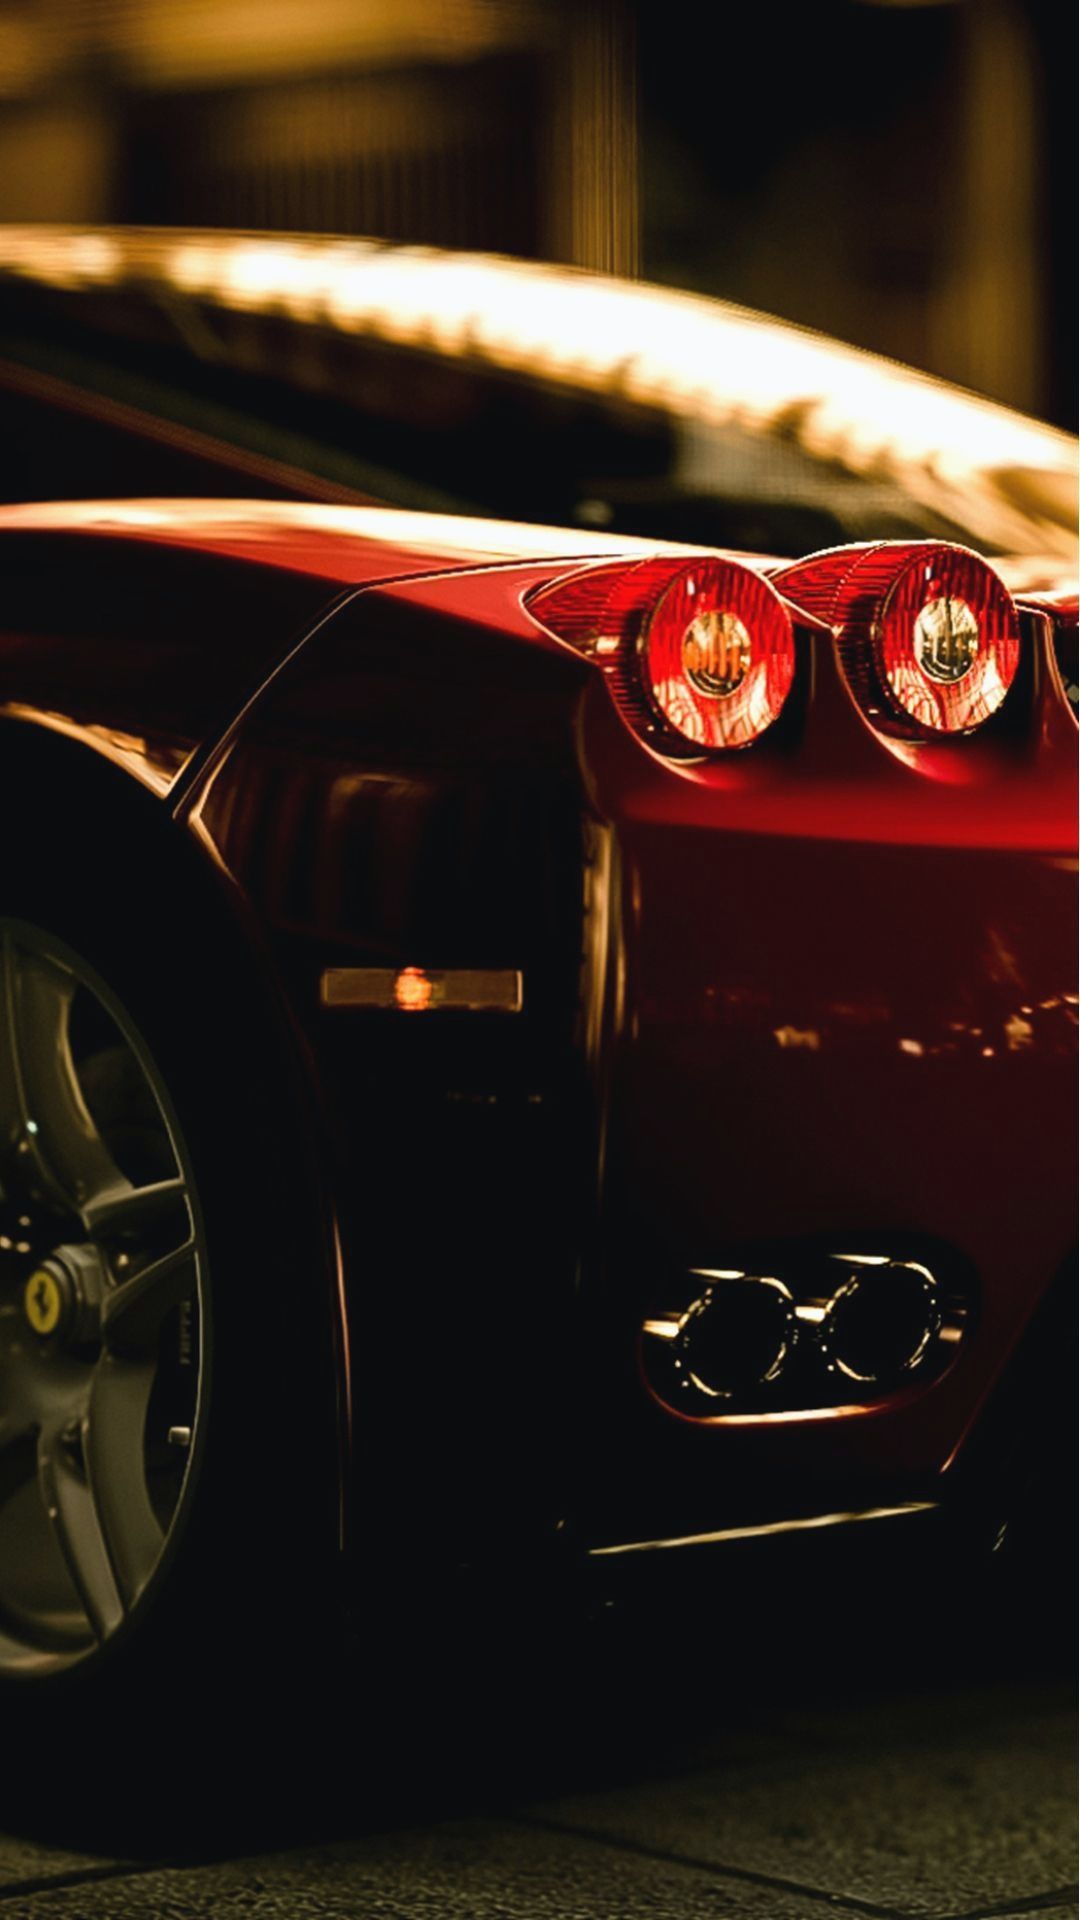 Car Back Lights Iphone Wallpapers Top Free Car Back Lights Car Iphone Wallpaper Iphone Wallpaper Video Iphone